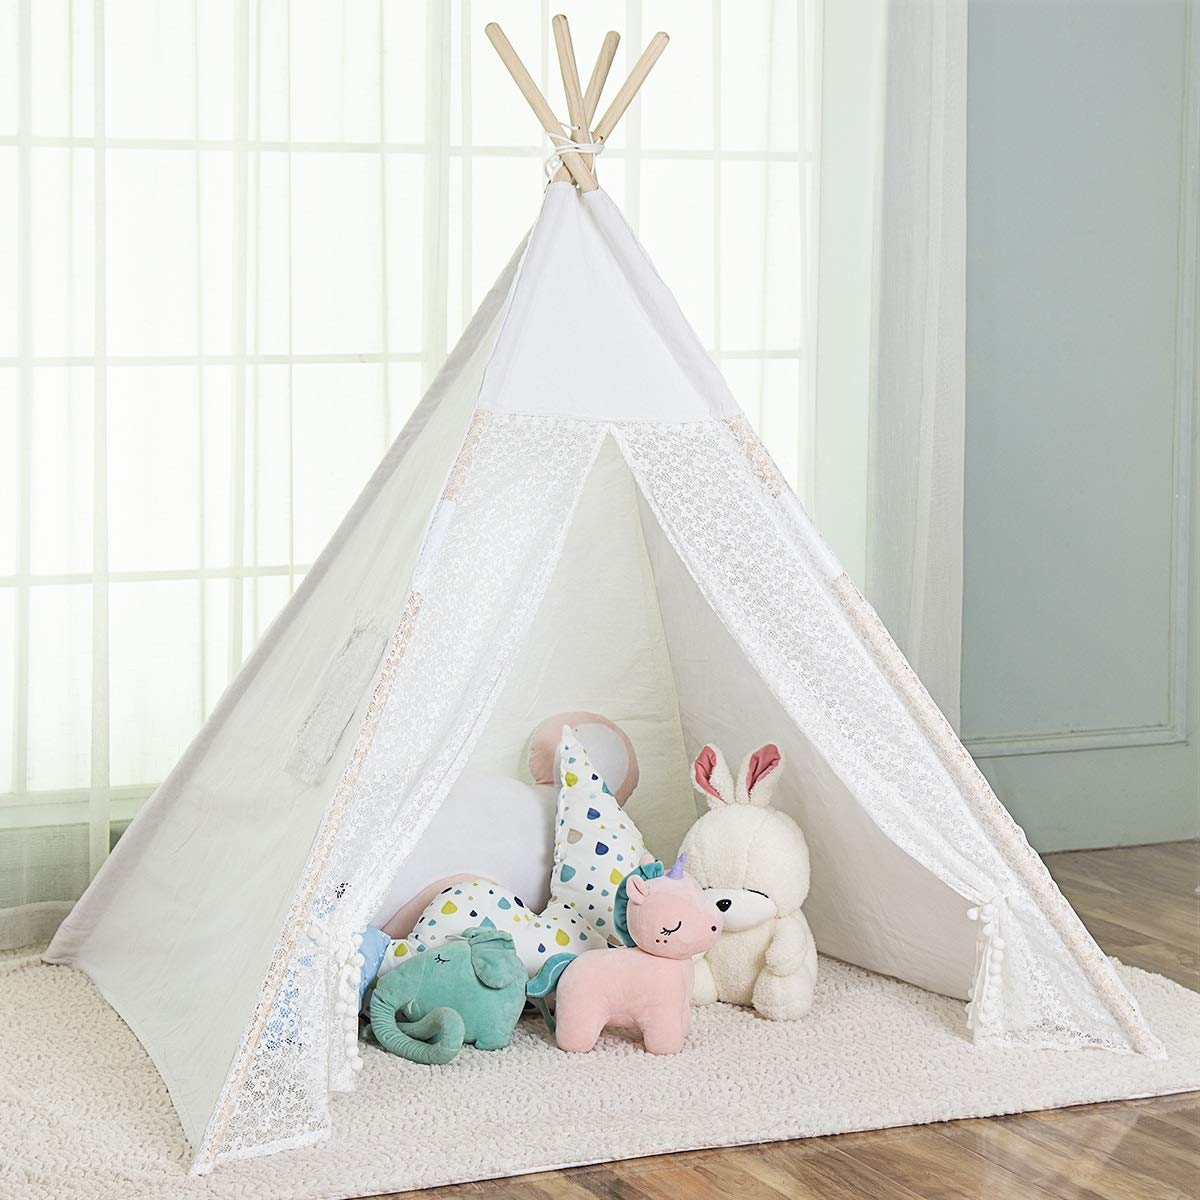 OUTREE Indoor Teepee Tent for Kids with 4 Wooden Poles and Carry Bag, Portable Canvas Tent with lace Edge